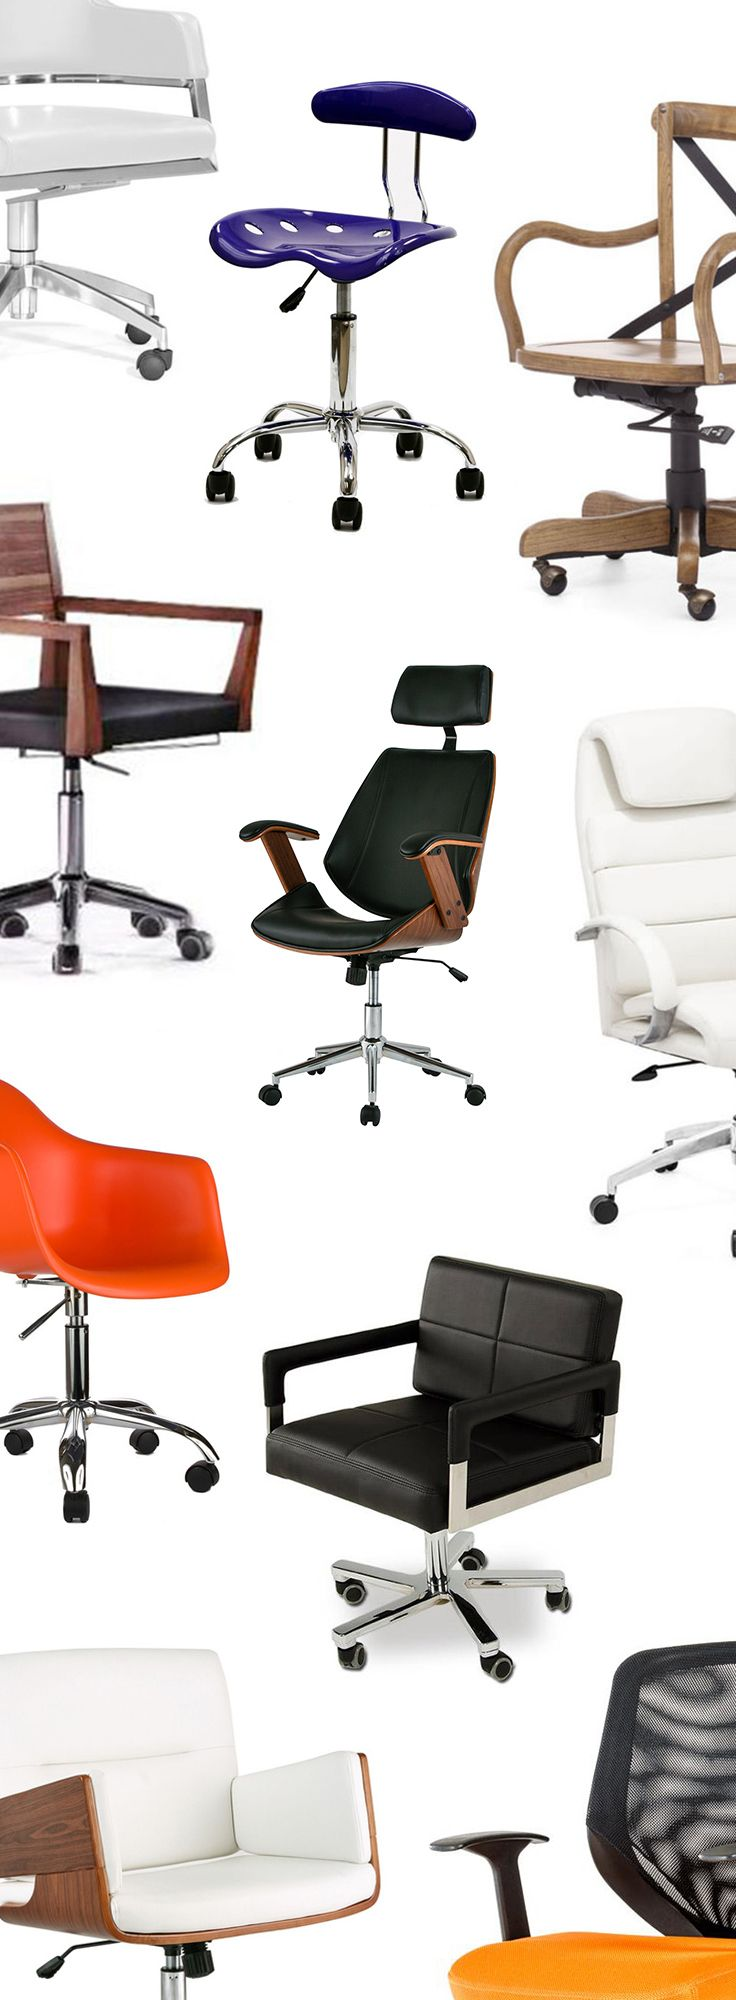 modern office chairs shop now at dotandbocom